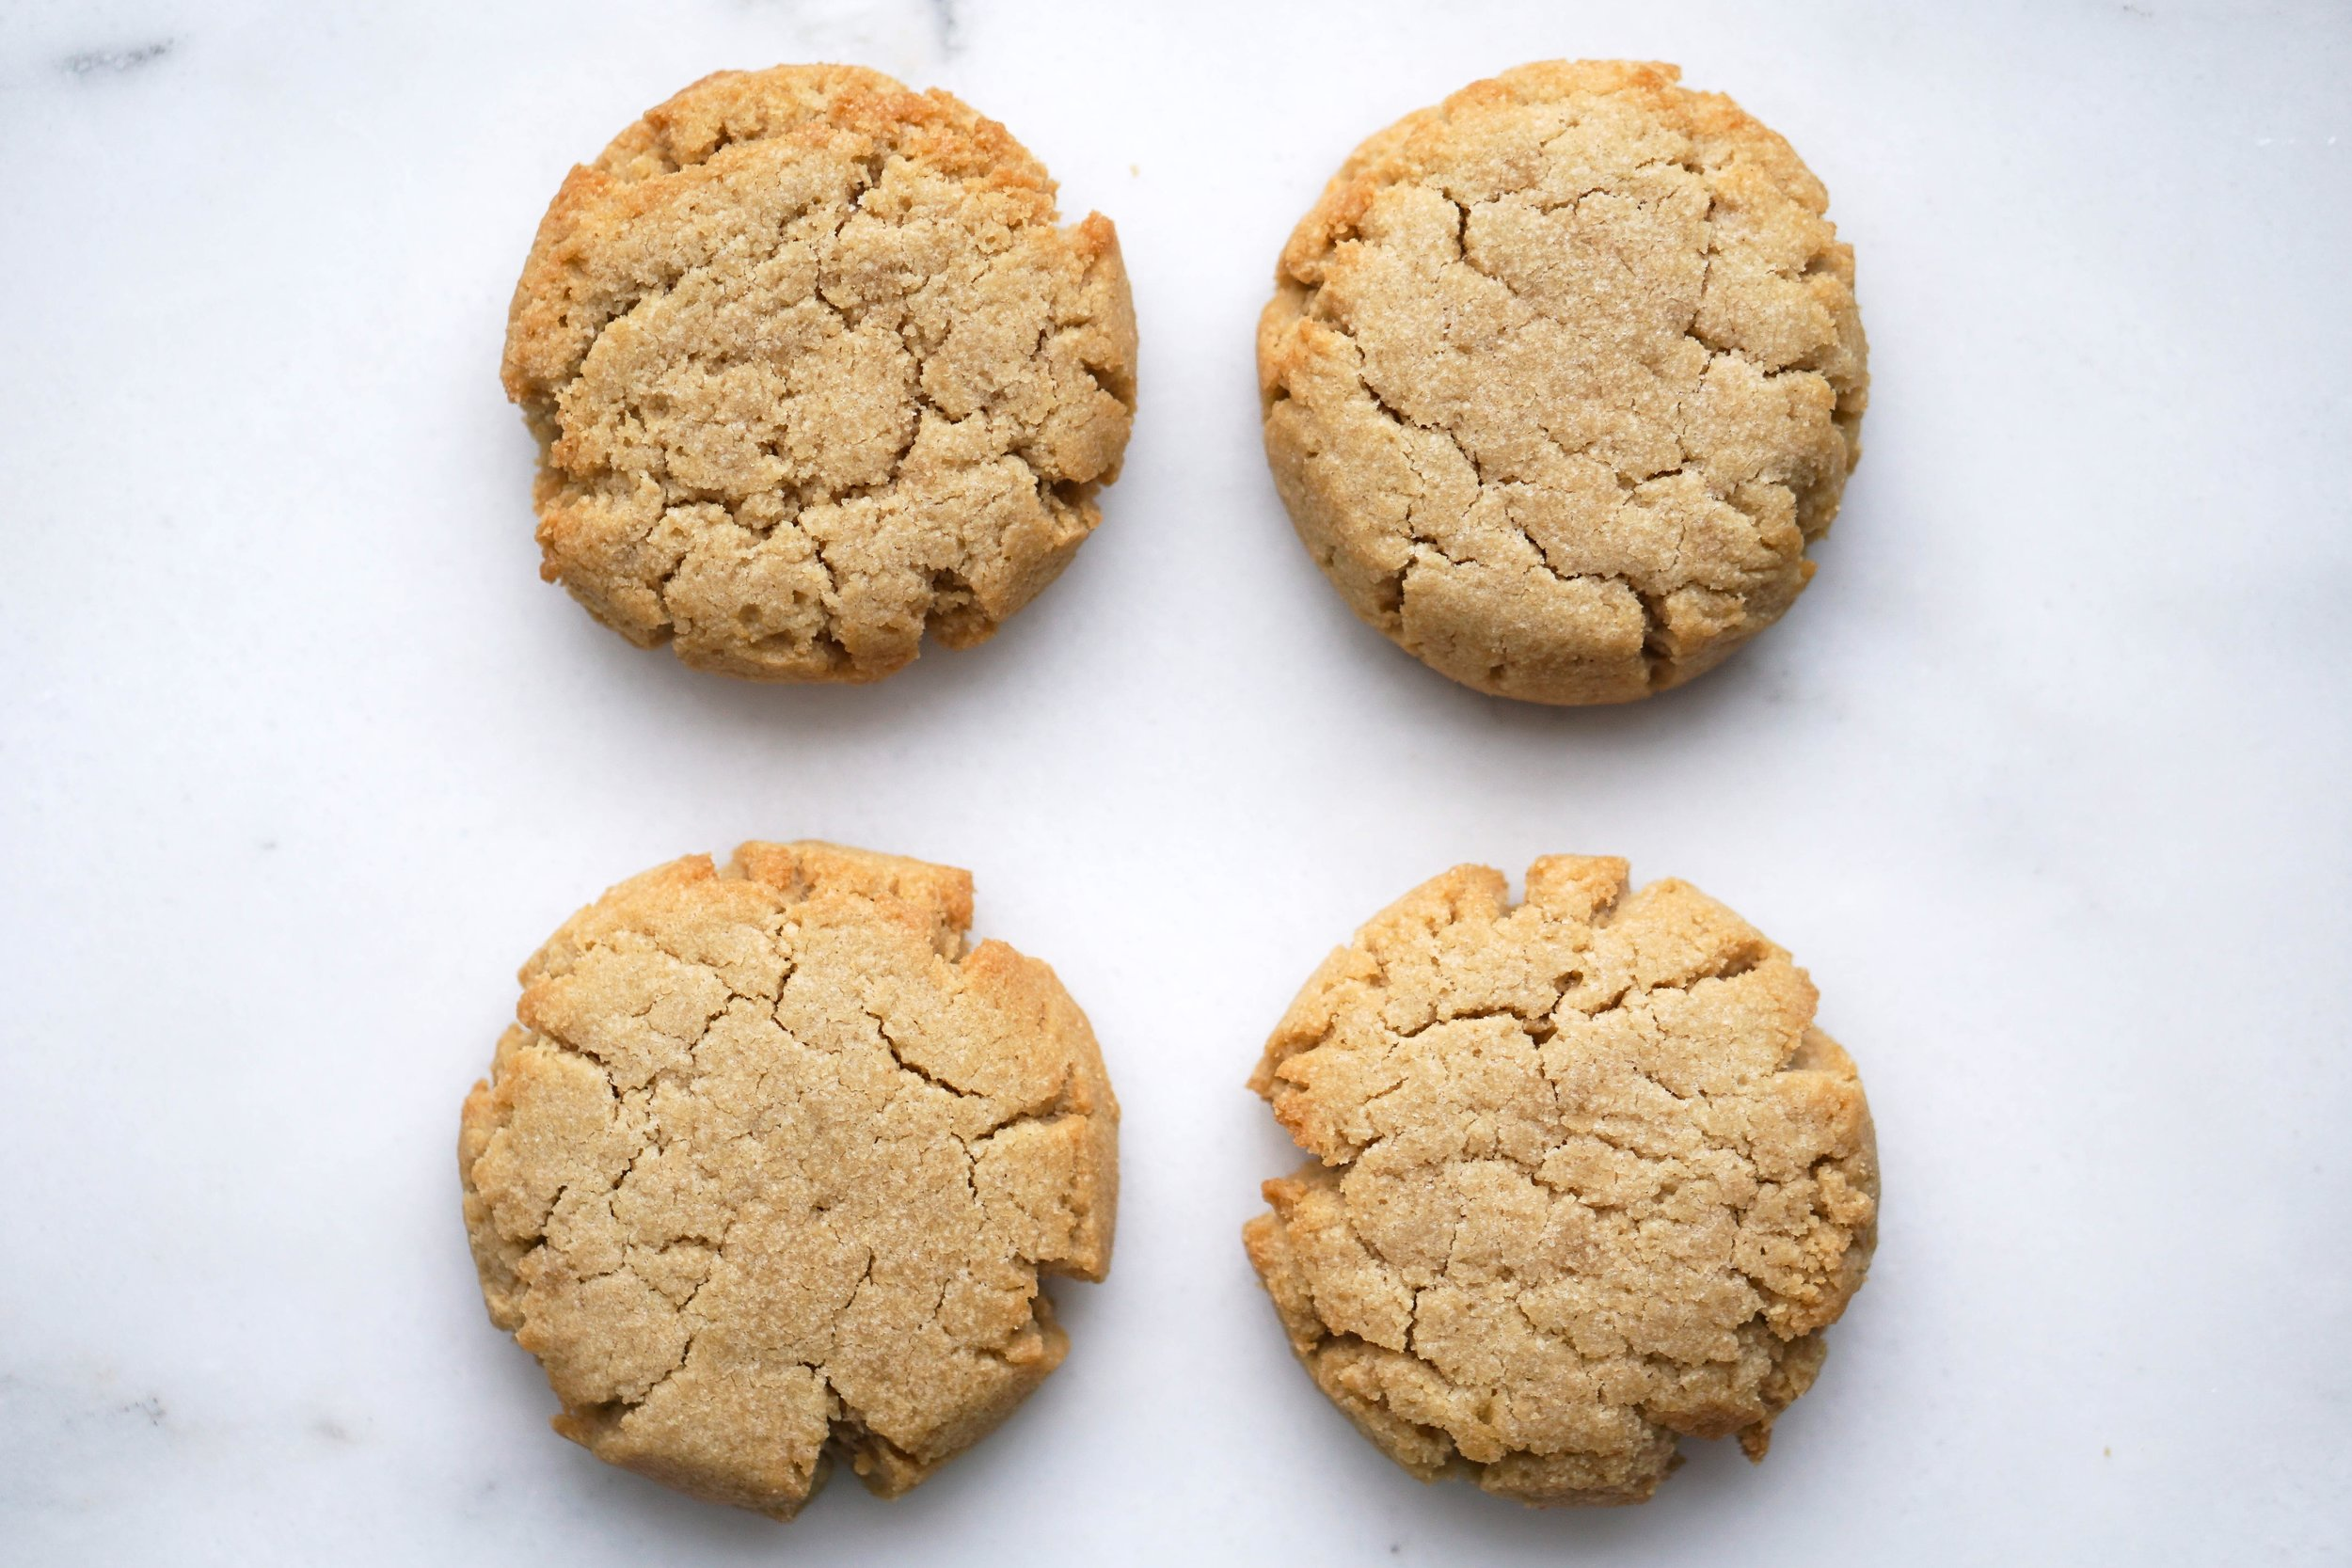 The No Sugar - Sugar Cookie Now Available on Amazon.com